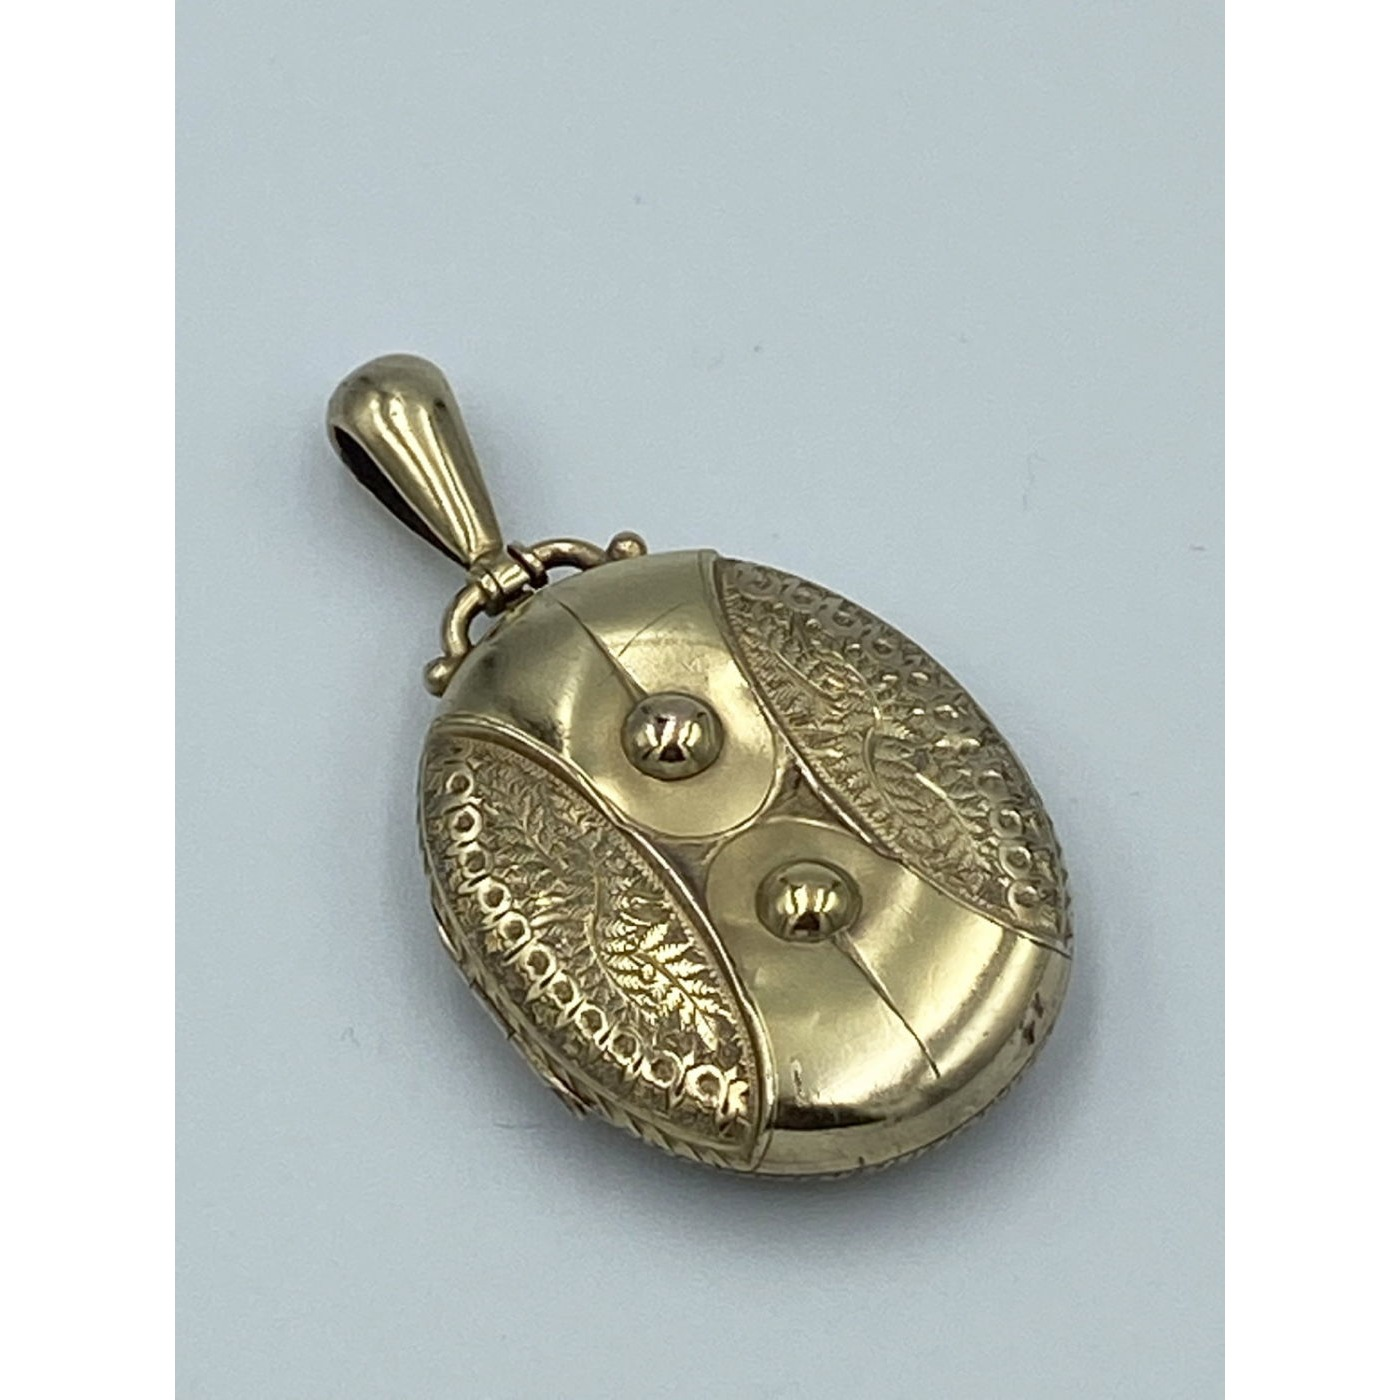 Buckle Locket with Unusual Design - Gold-Filled